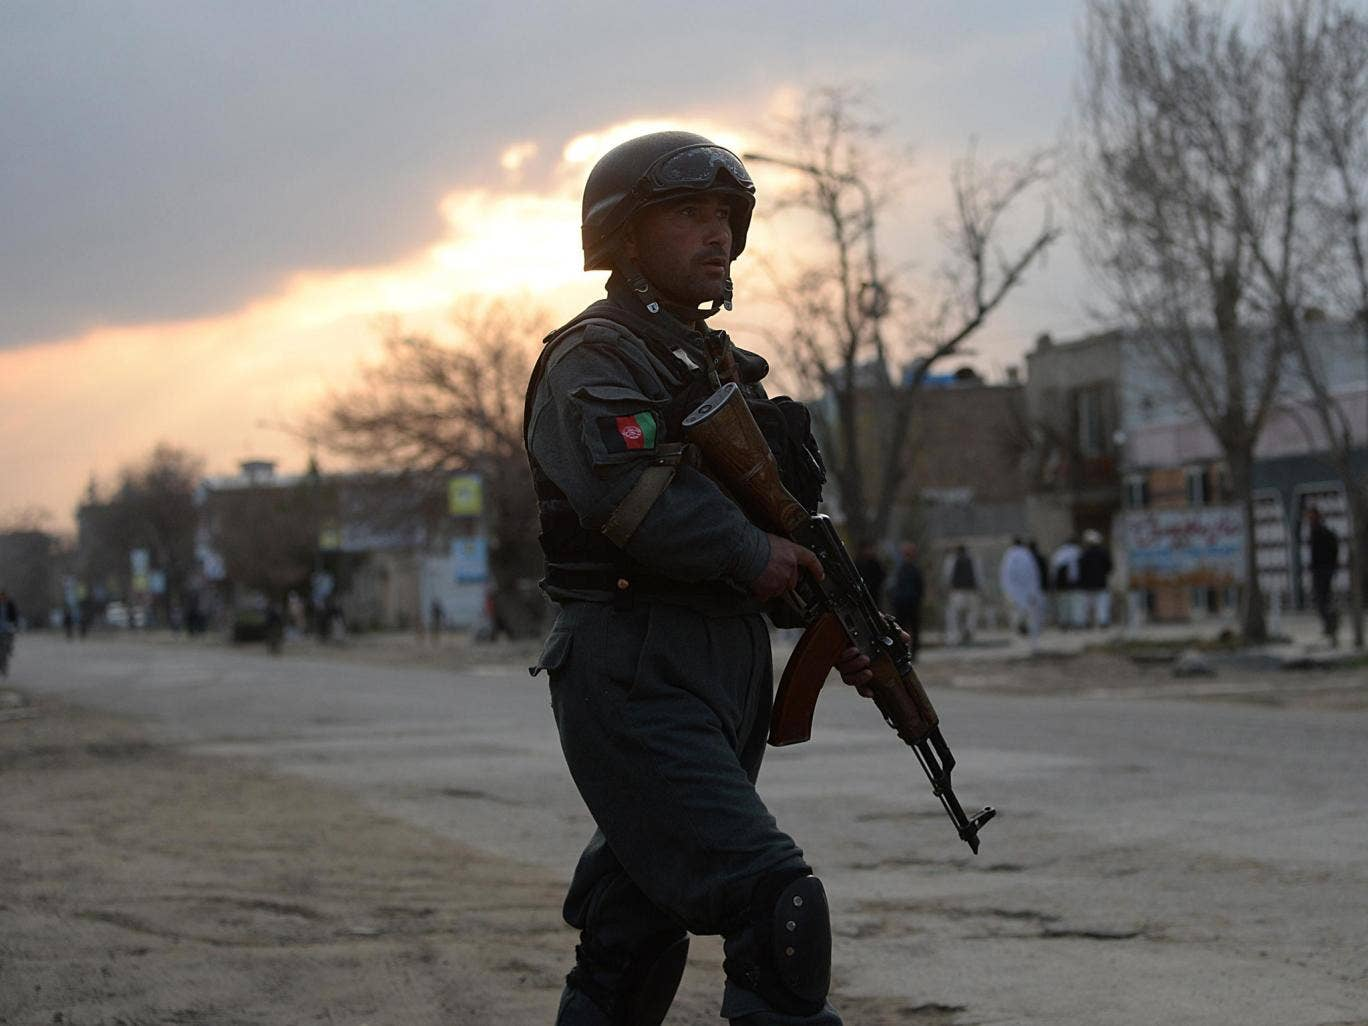 Kabul is already on high alert and people across the country are on edge